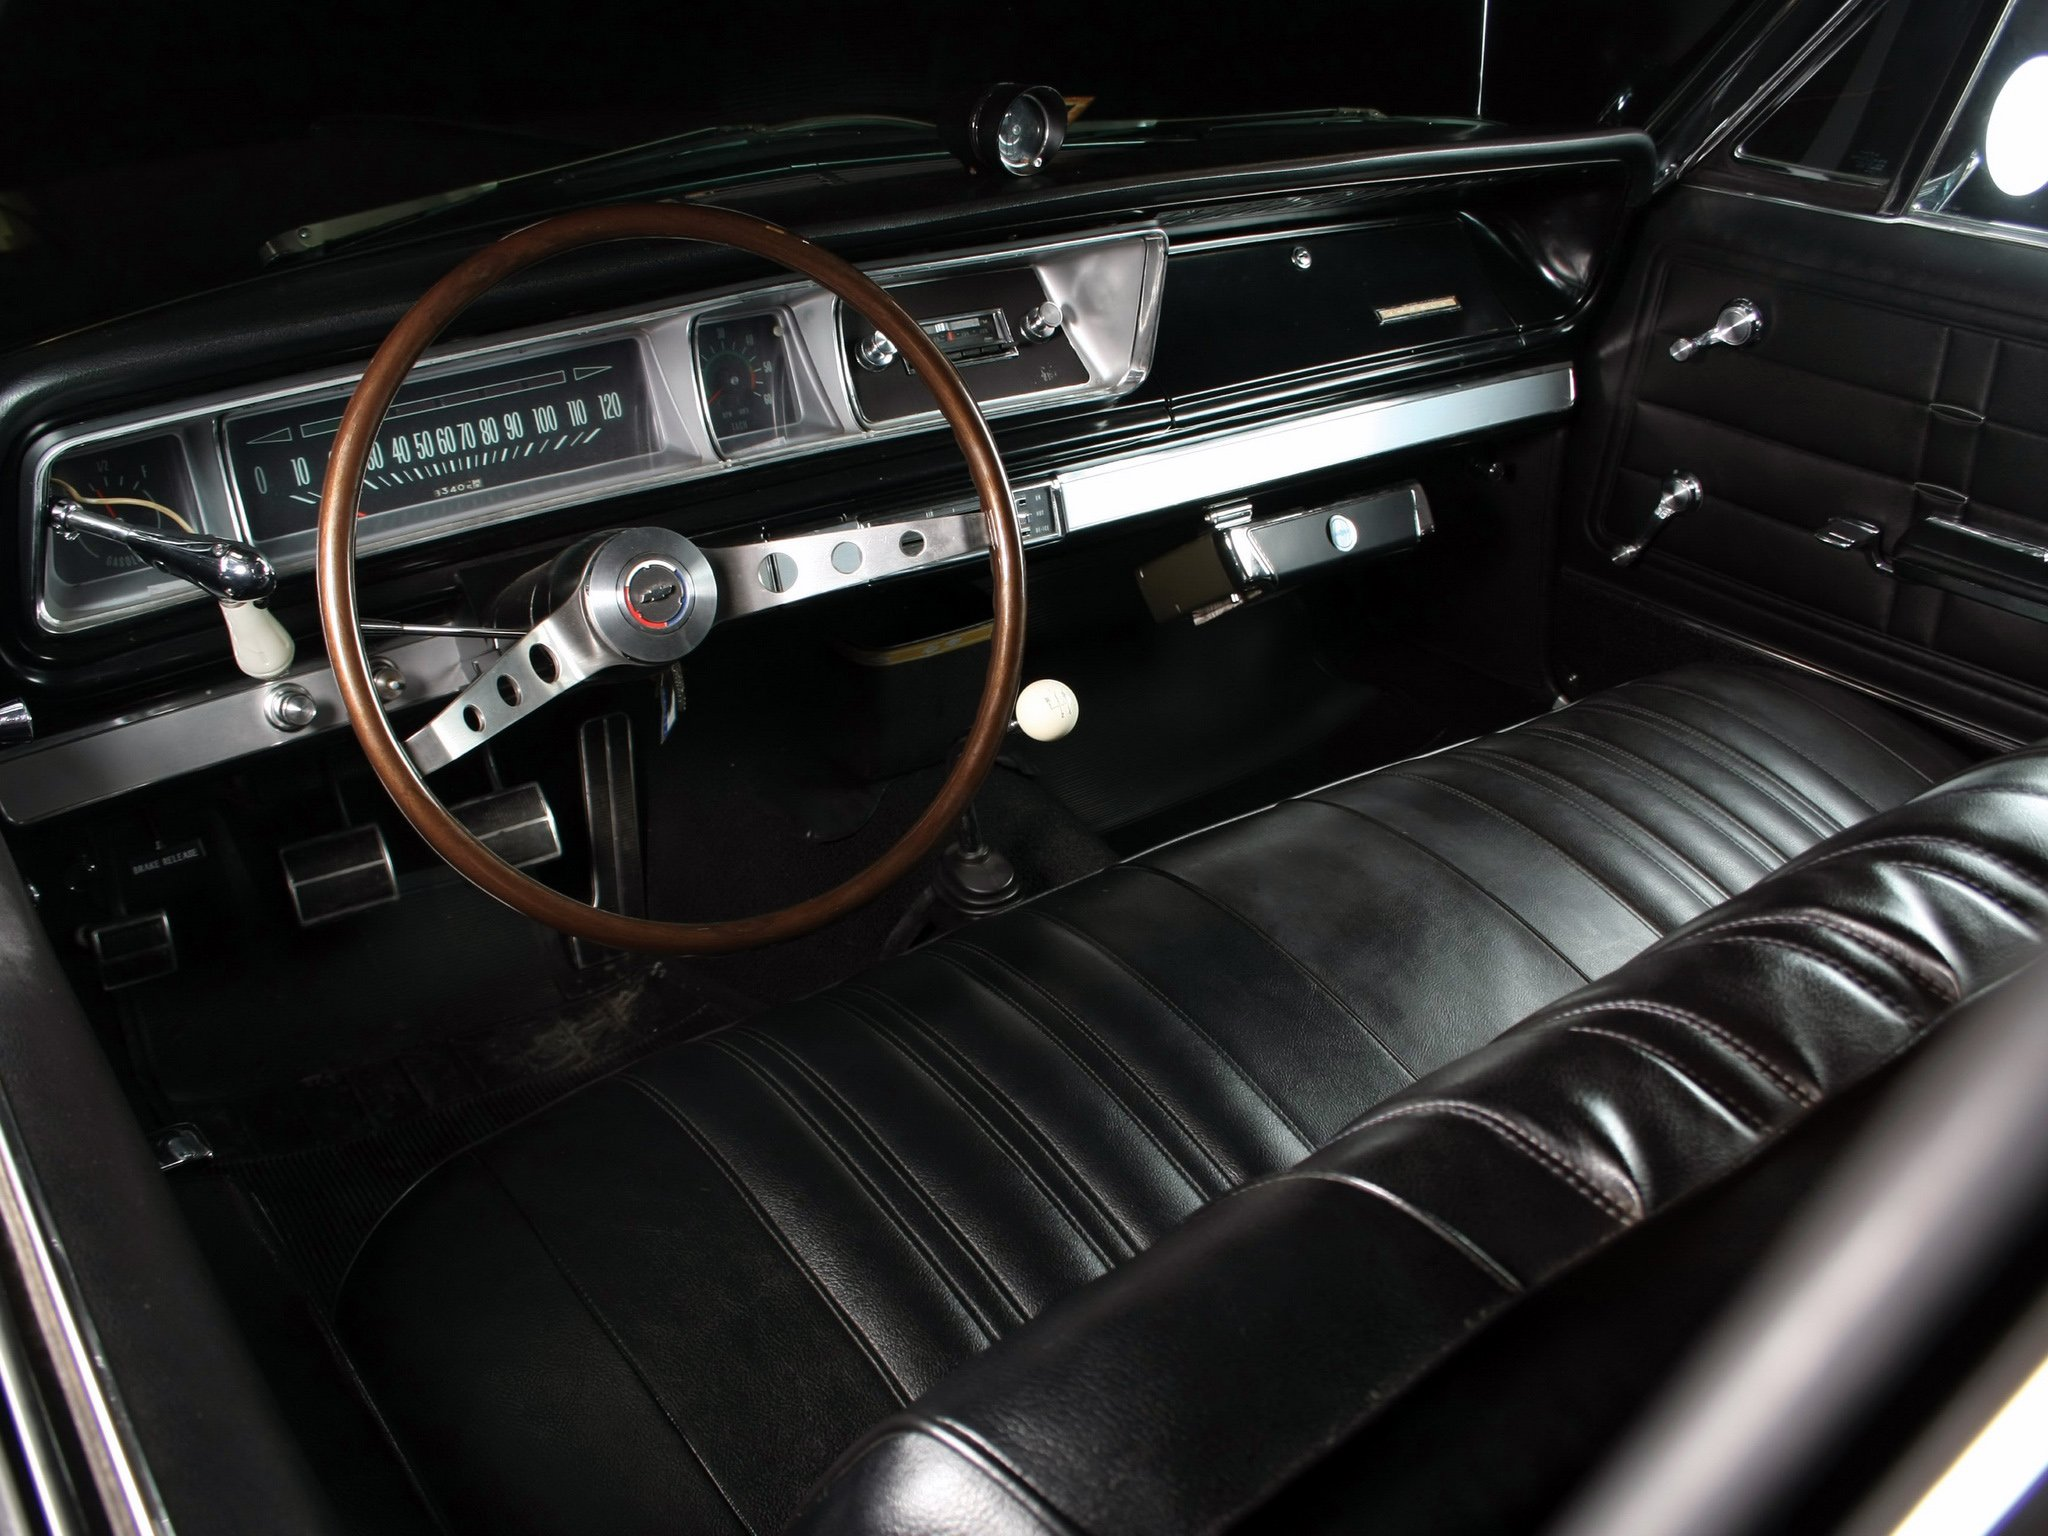 1966 chevrolet impala 396 325hp sport coupe classic muscle interior g wallpaper 2048x1536. Black Bedroom Furniture Sets. Home Design Ideas